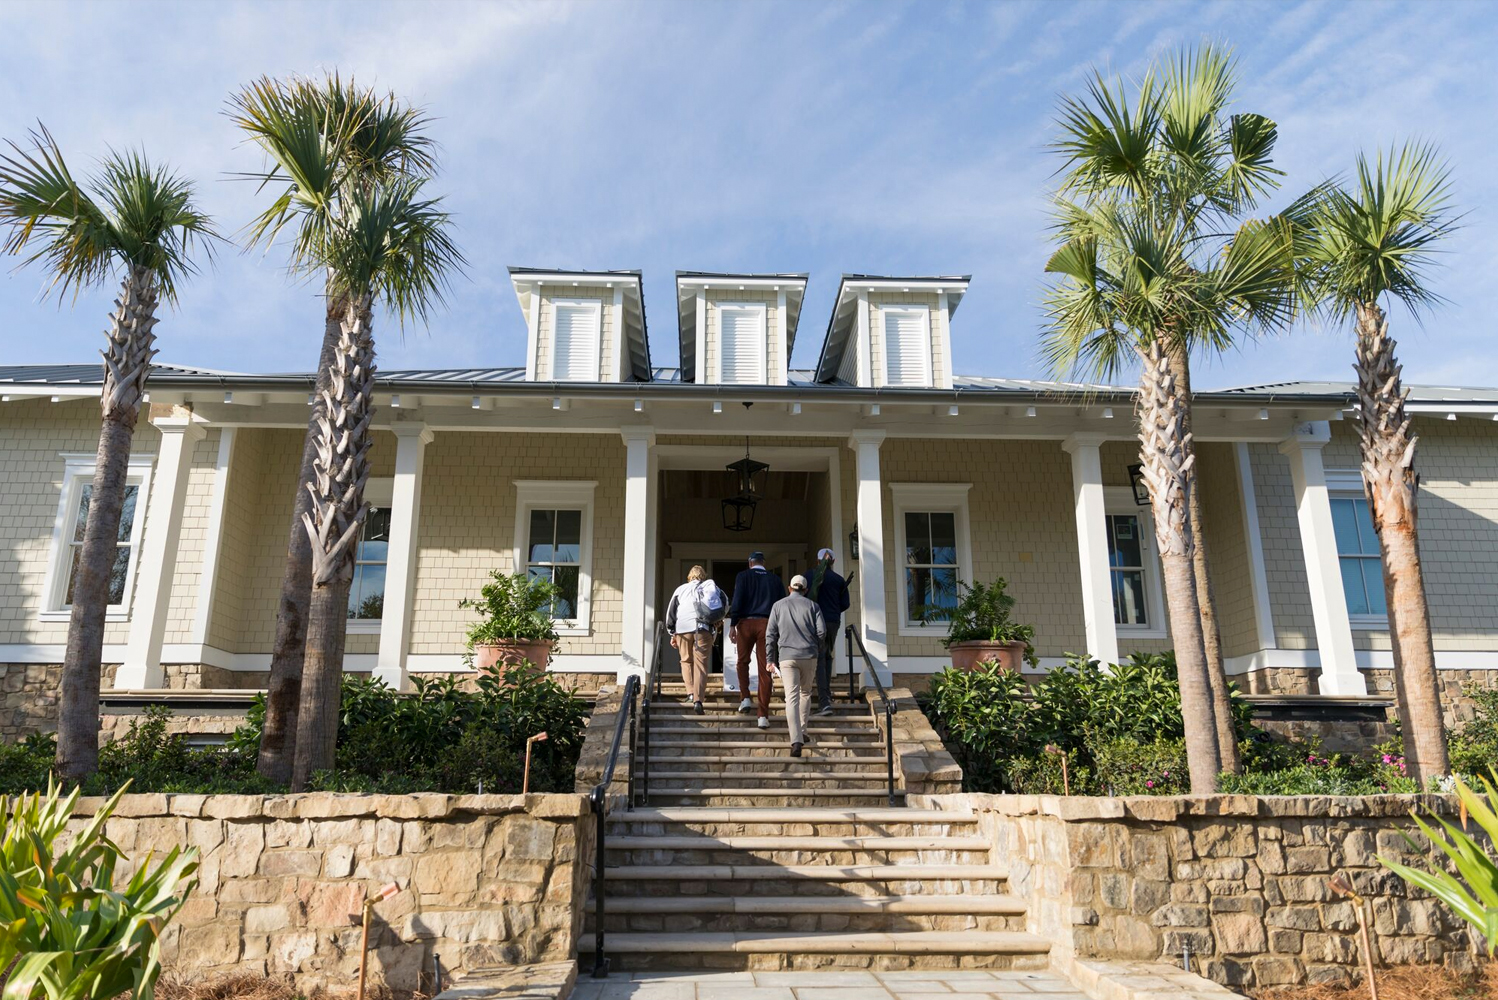 Sea Island, a Forbes Five-Star resort on the coast of Georgia, unveiled the new Golf Performance Center at the Sea Island Golf Club.